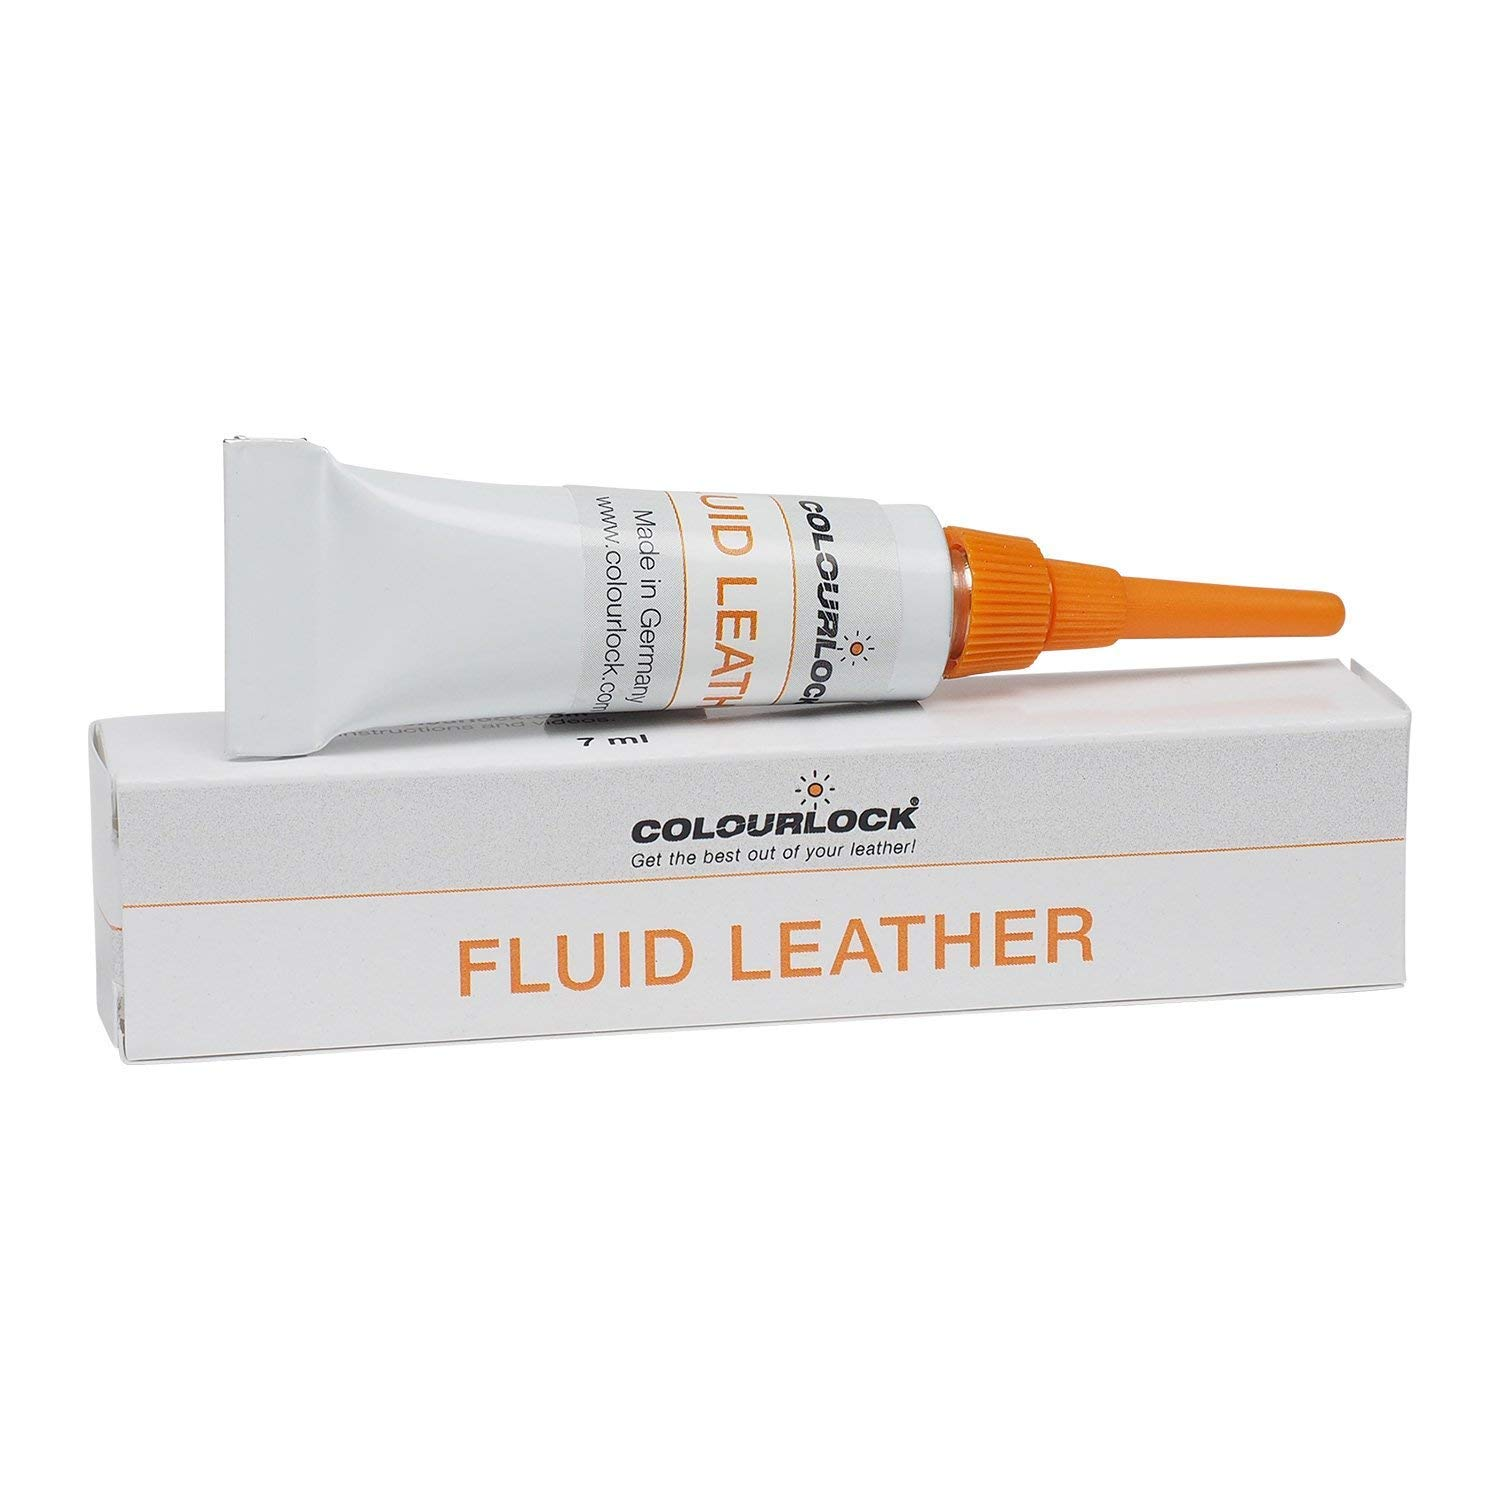 Colourlock Fluid Leather 7ml scratch filler for filling and repairing small holes, tears, deeper scratches and cracks on leather car seats, furniture and other leather items (F021) Lederzentrum GmbH